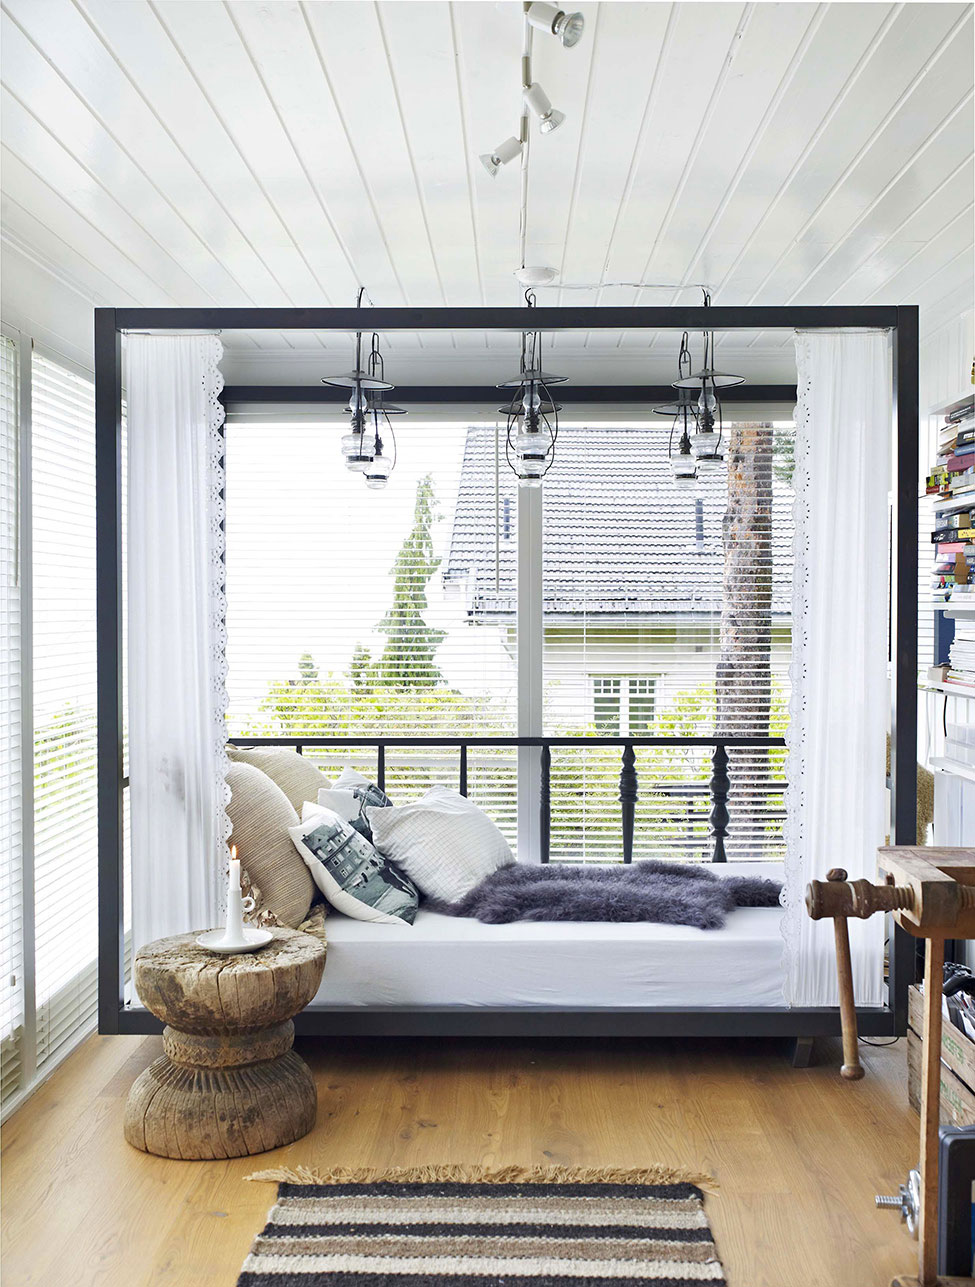 Home of an Interior Designer in Oslo by Steen & Aiesh (19)